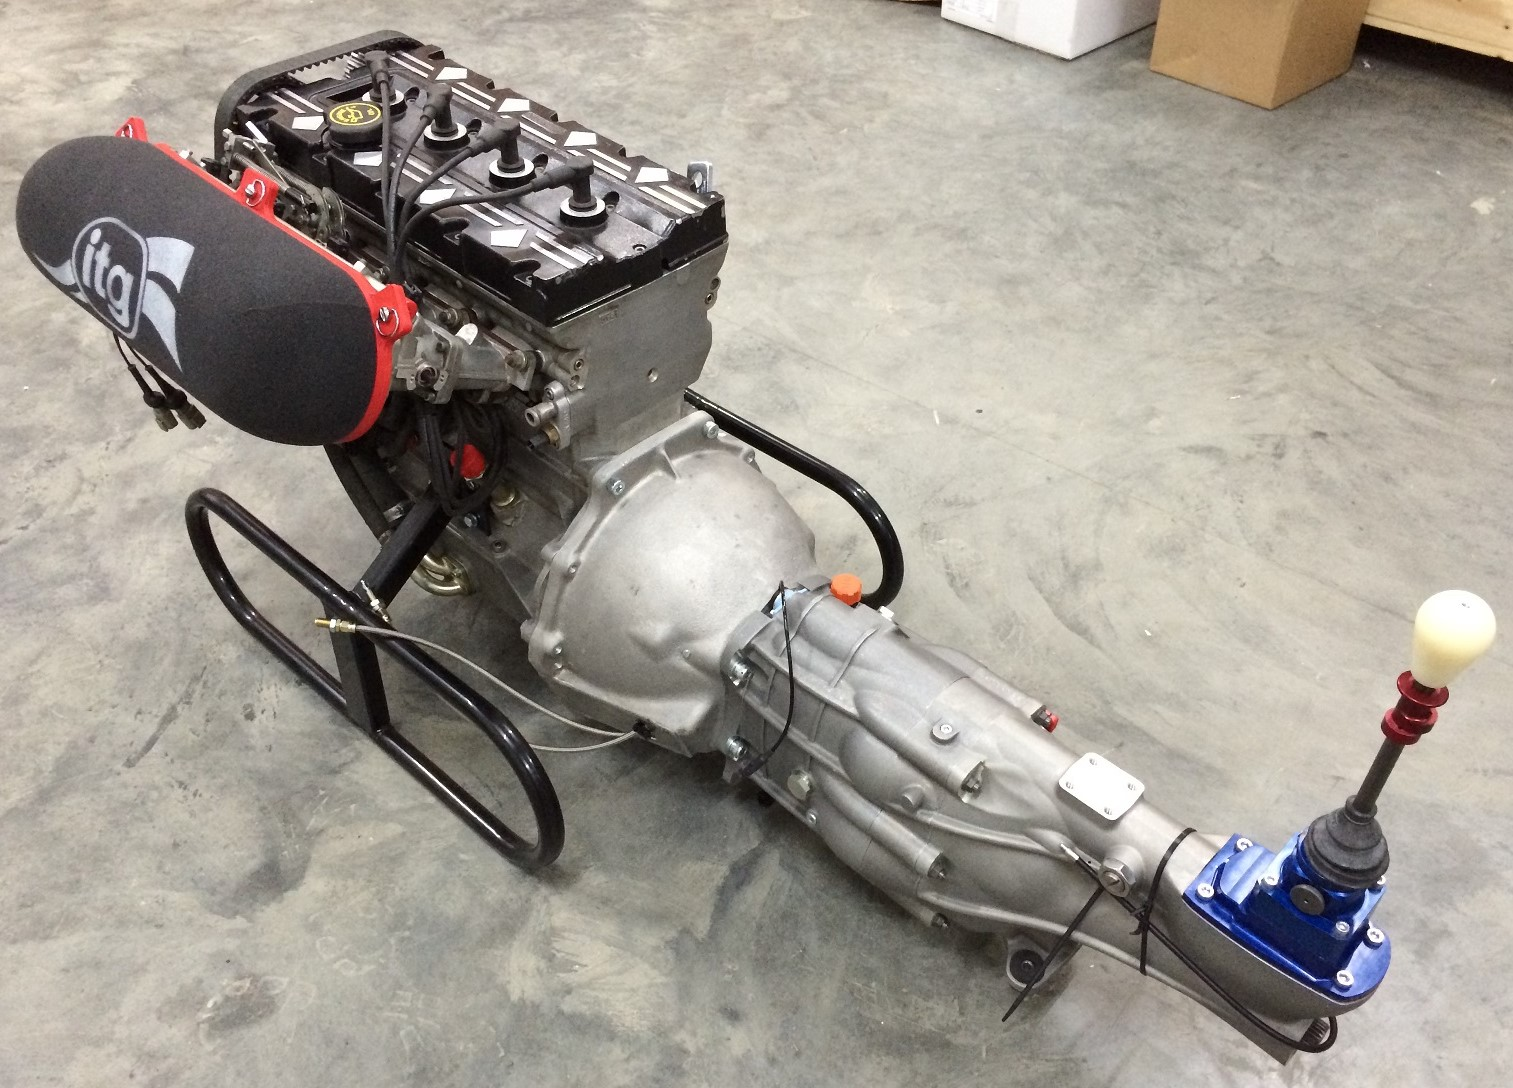 Details about Quaife 60G 6 Speed Sequential Gearbox - Helical Gears Direct  Drive / Overdive